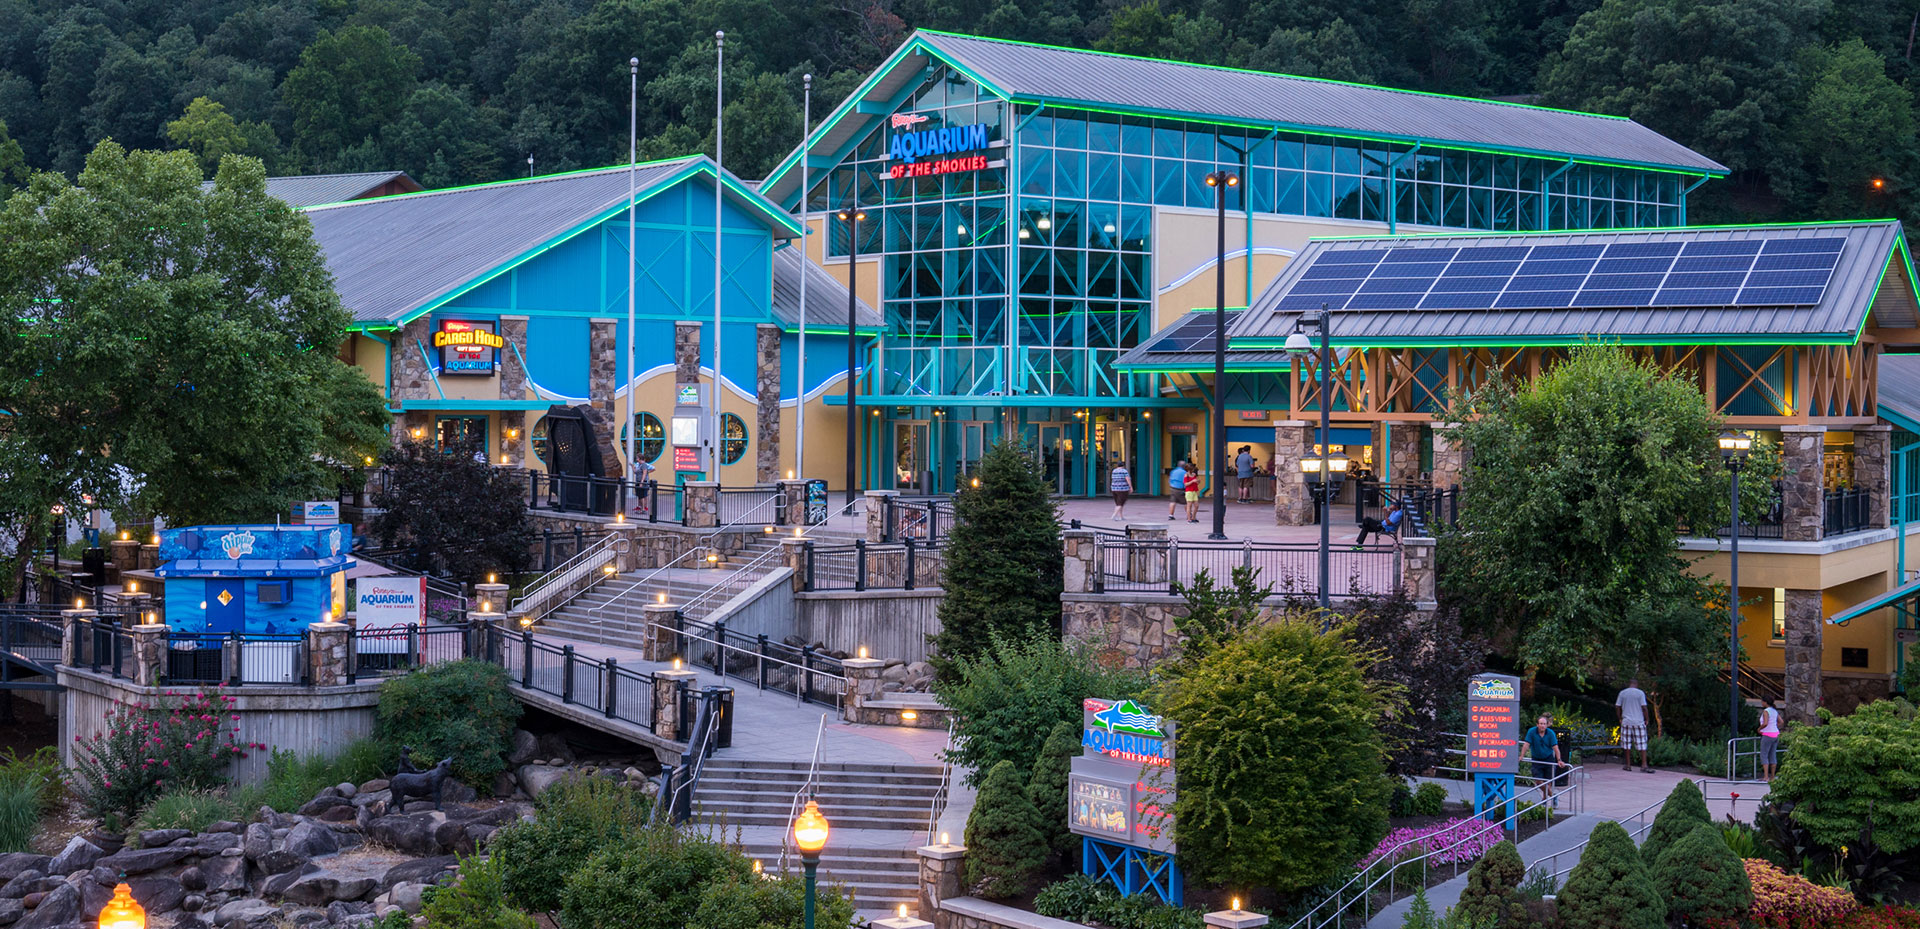 Ripley's Aquarium of the Smokies | Gatlinburg Attractions | Things To Do In Gatlinburg, TN